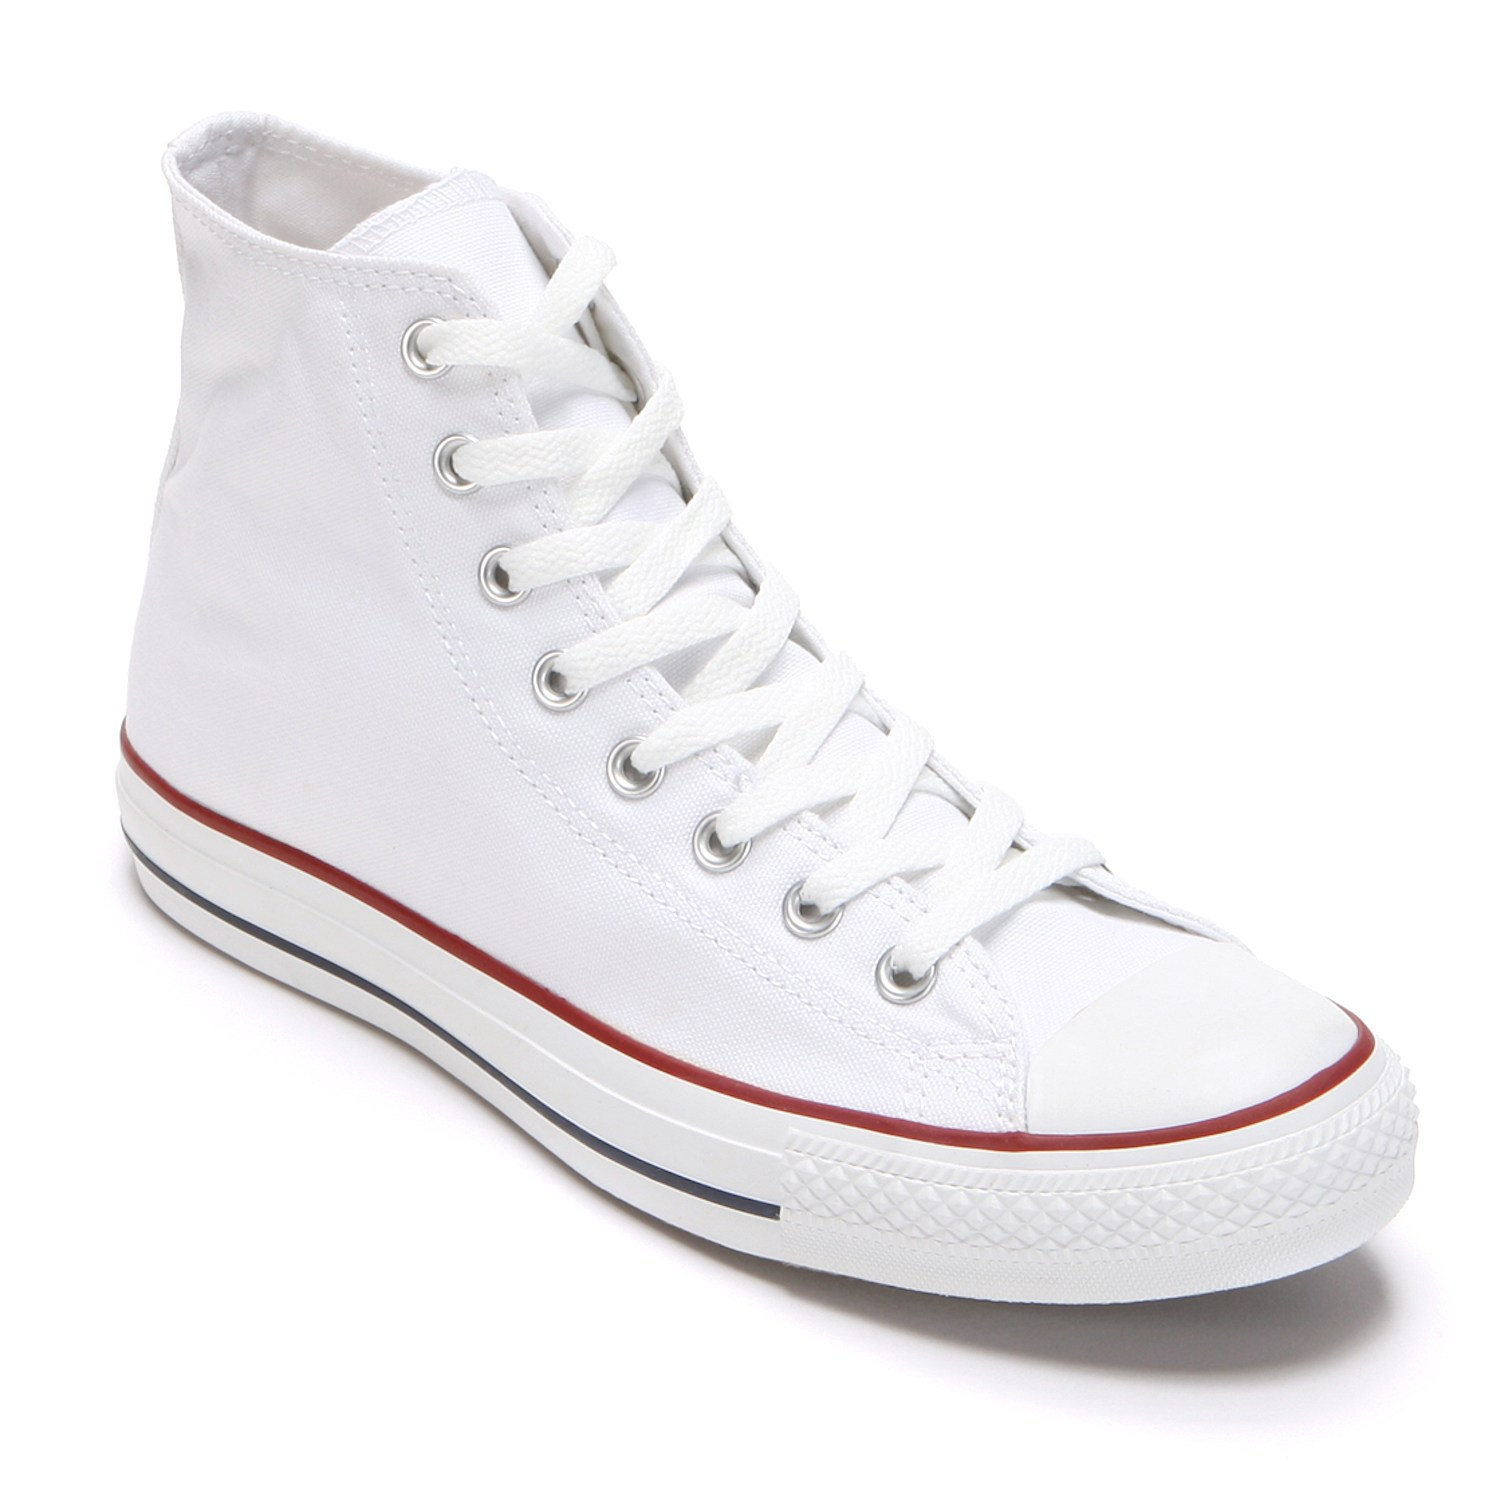 White converse adult converse all star chuck taylor high-top sneakers DNUMDXN